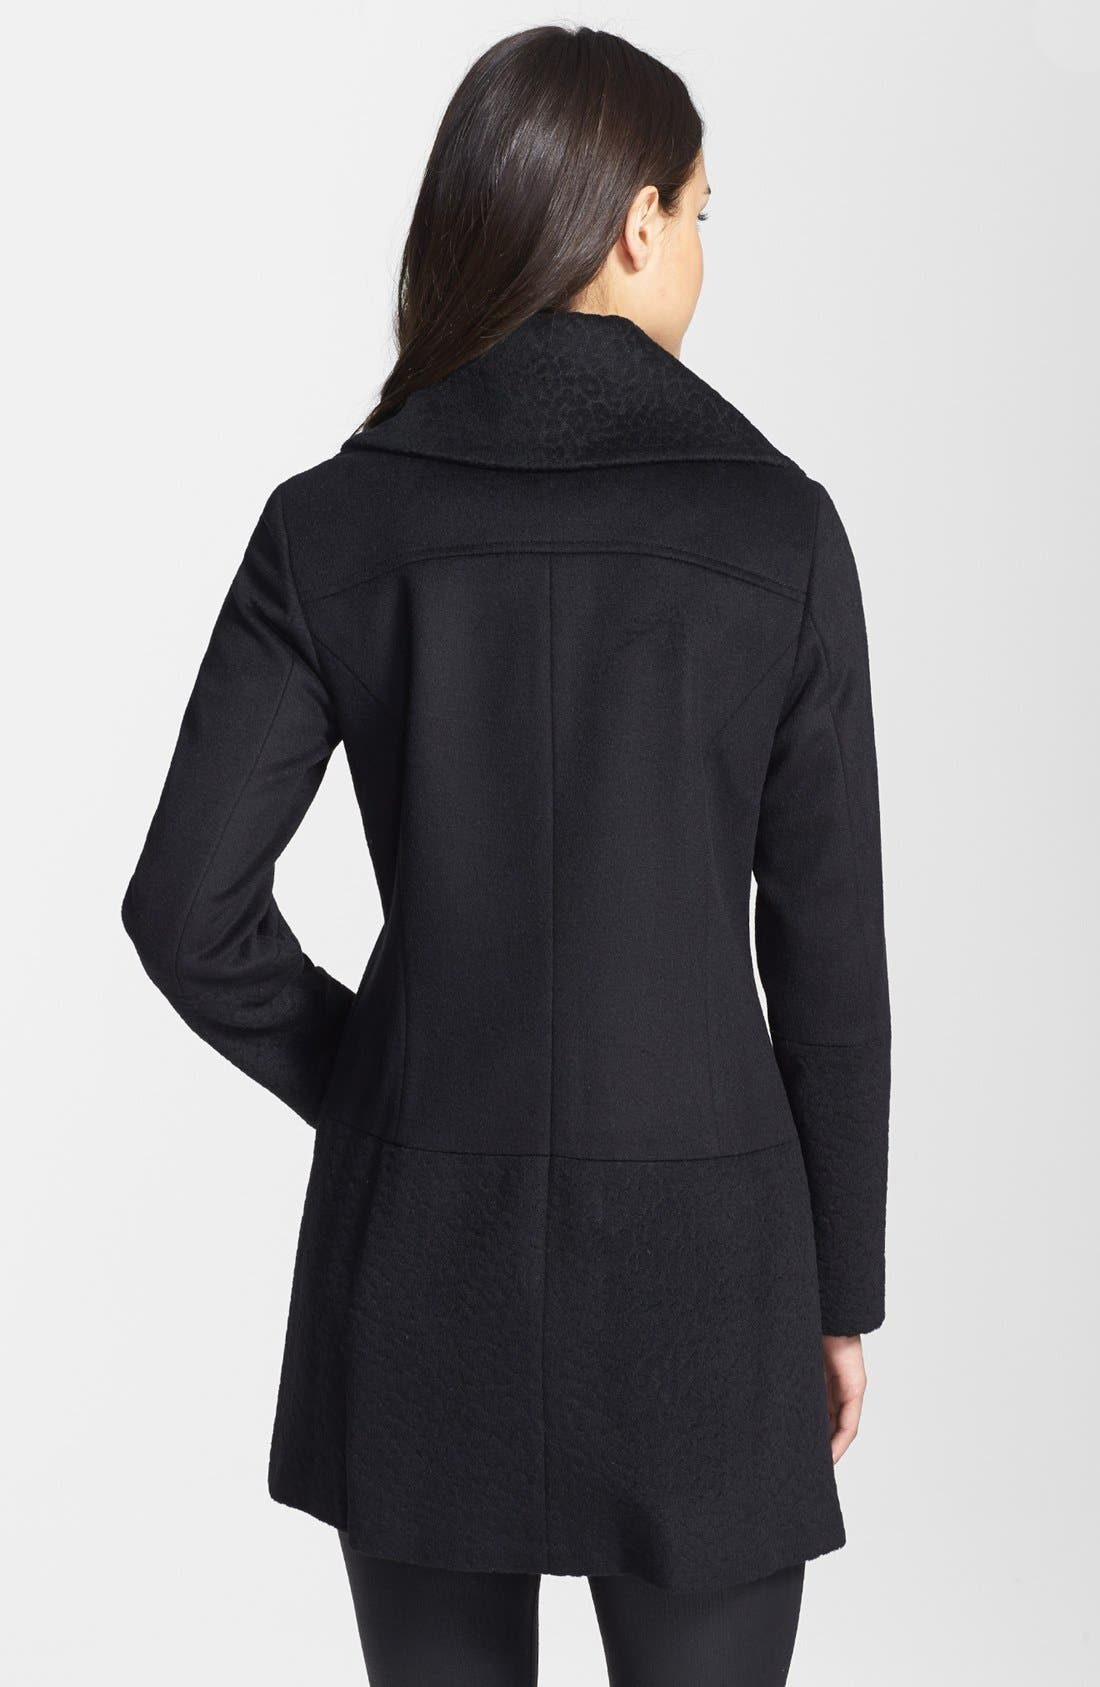 Solid & Jacquard Wool Blend Coat,                             Alternate thumbnail 2, color,                             001